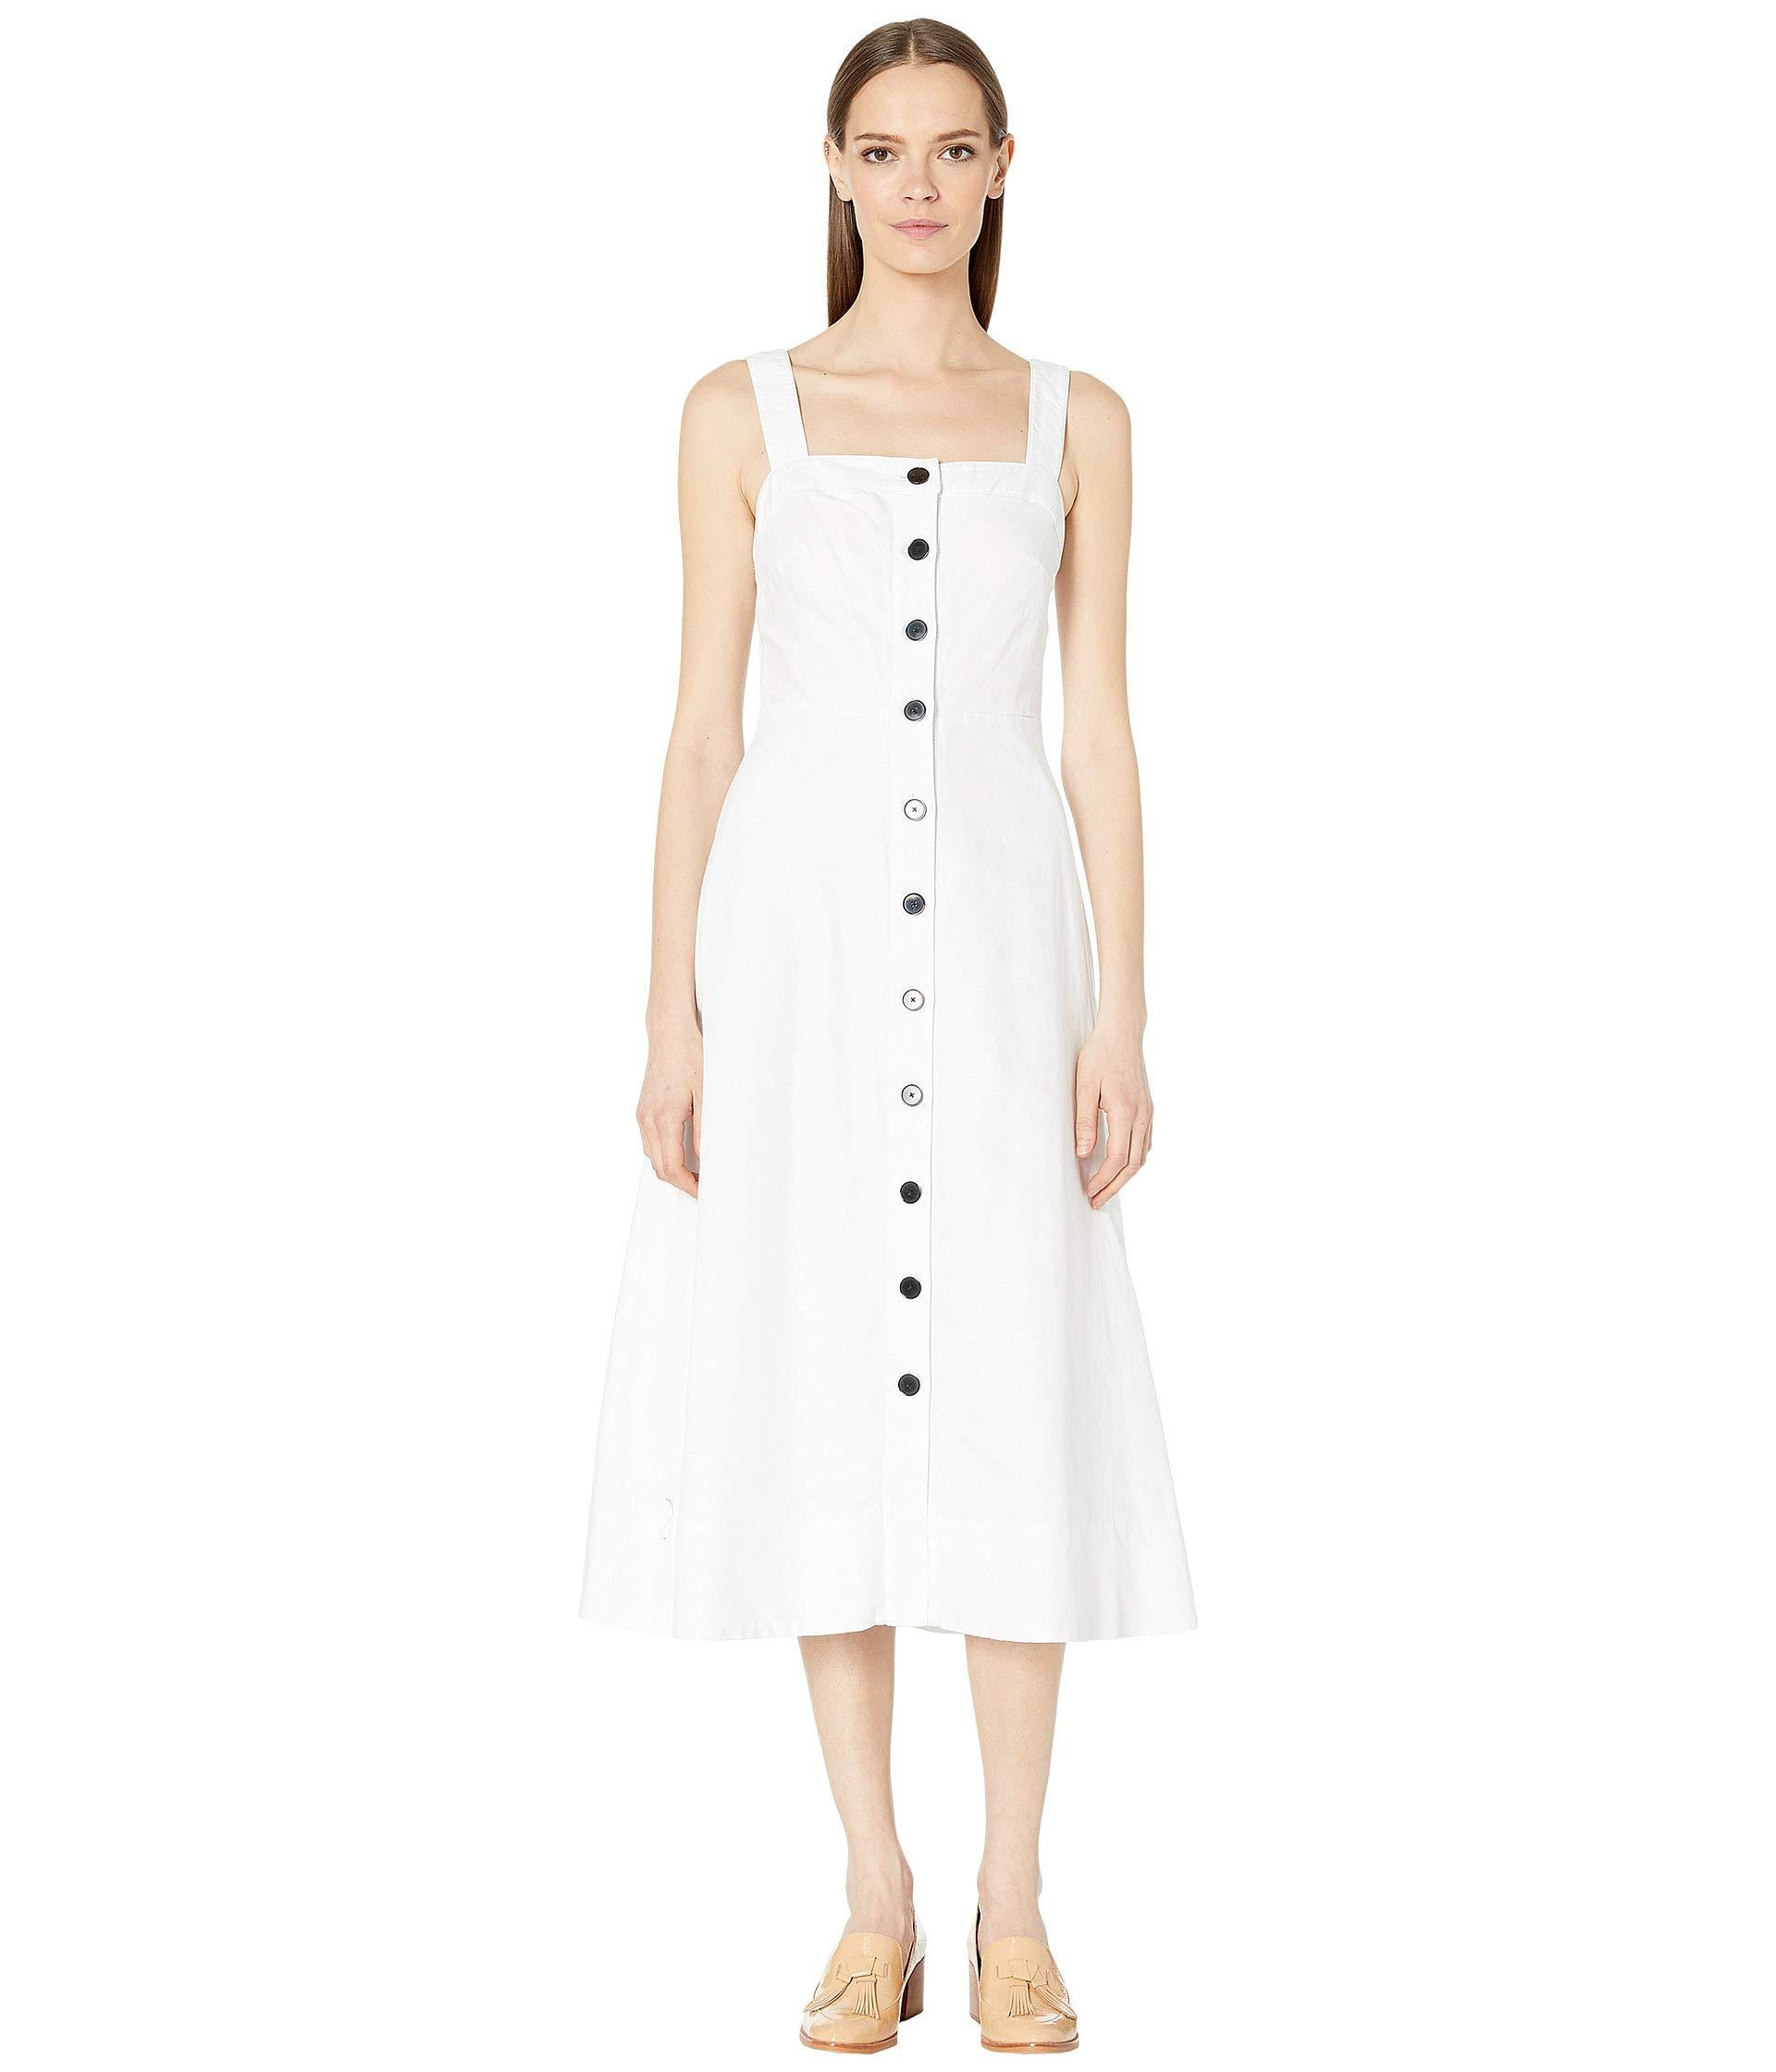 Kate Spade Linen Button Front Midi Dress in White - Lyst